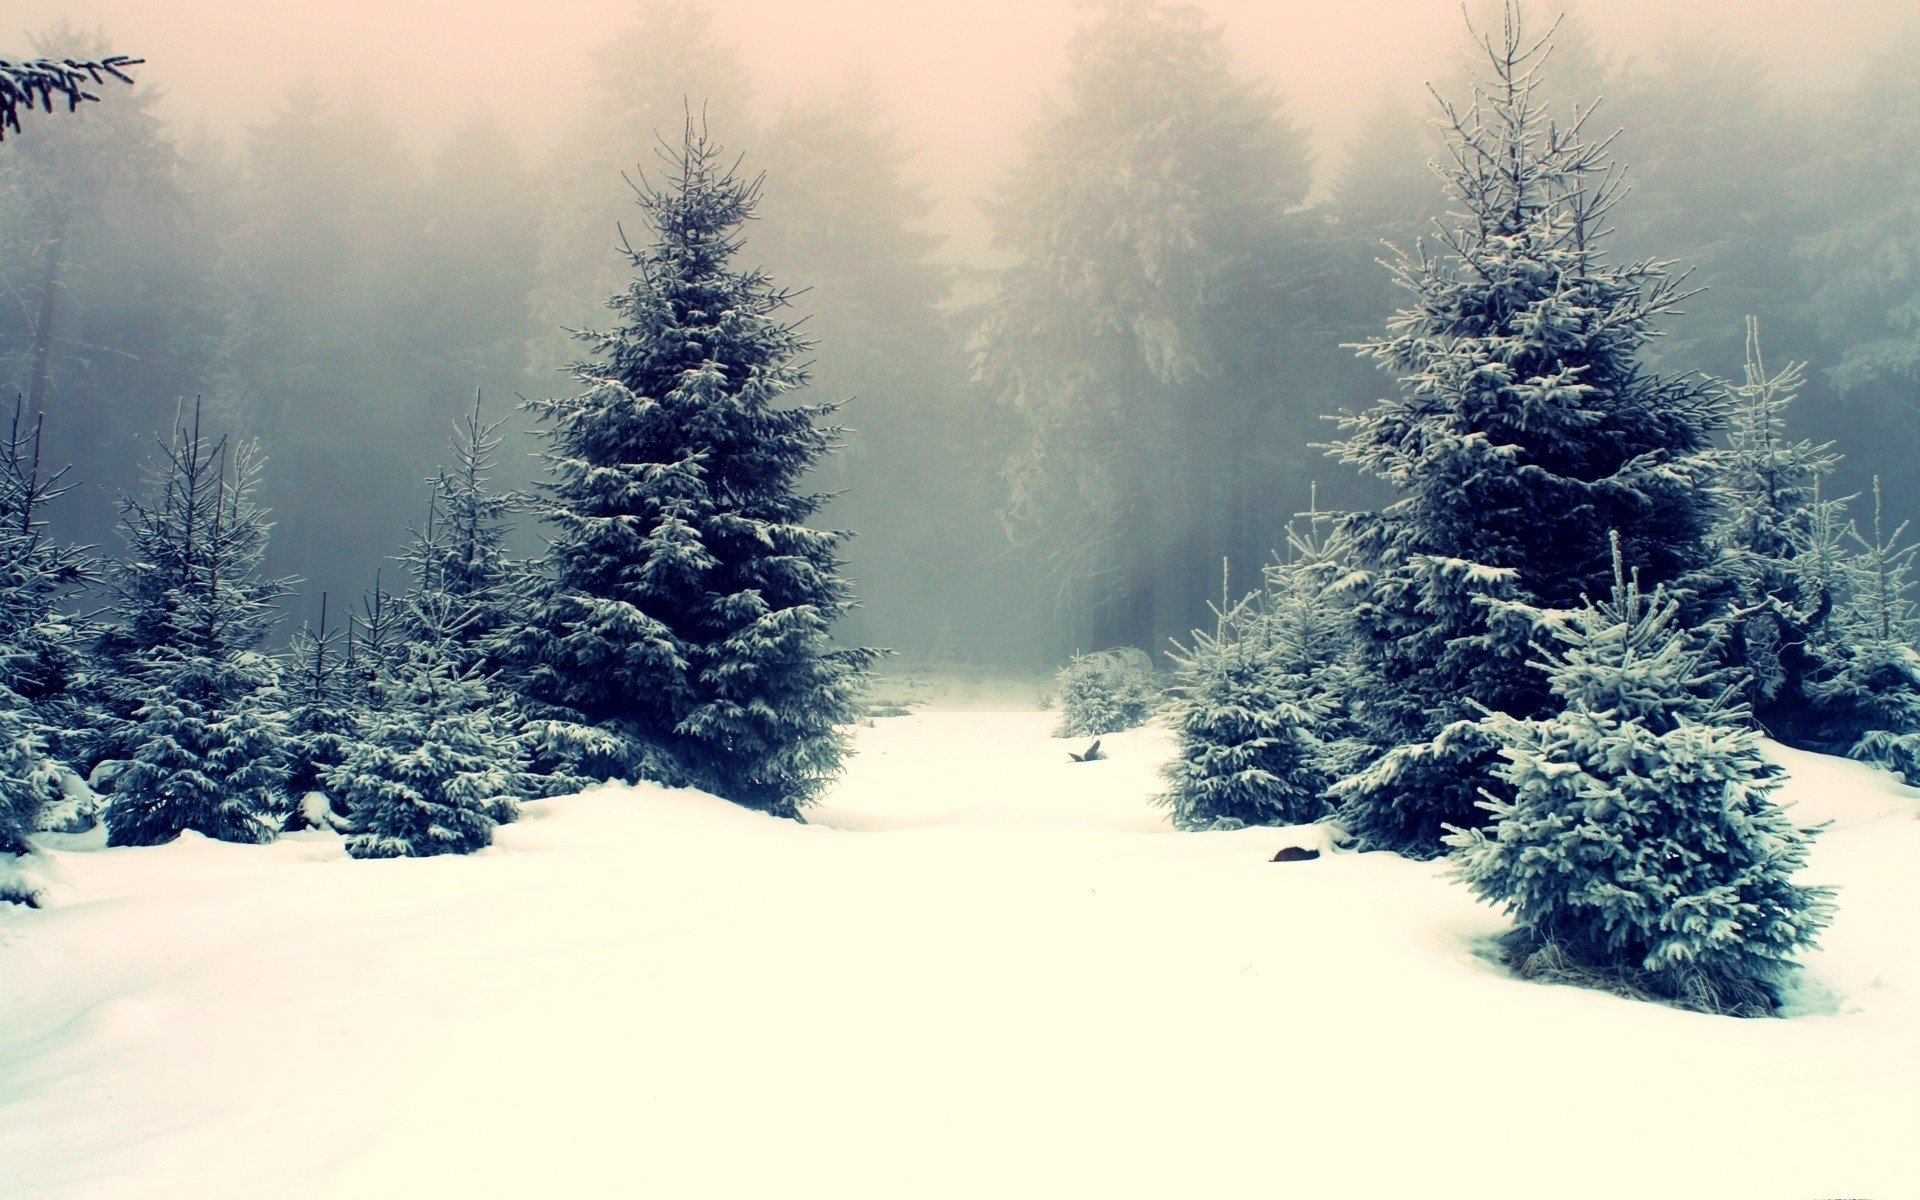 Winter Snow Wallpaper 1920x1200 Winter Snow Forest 1920x1200